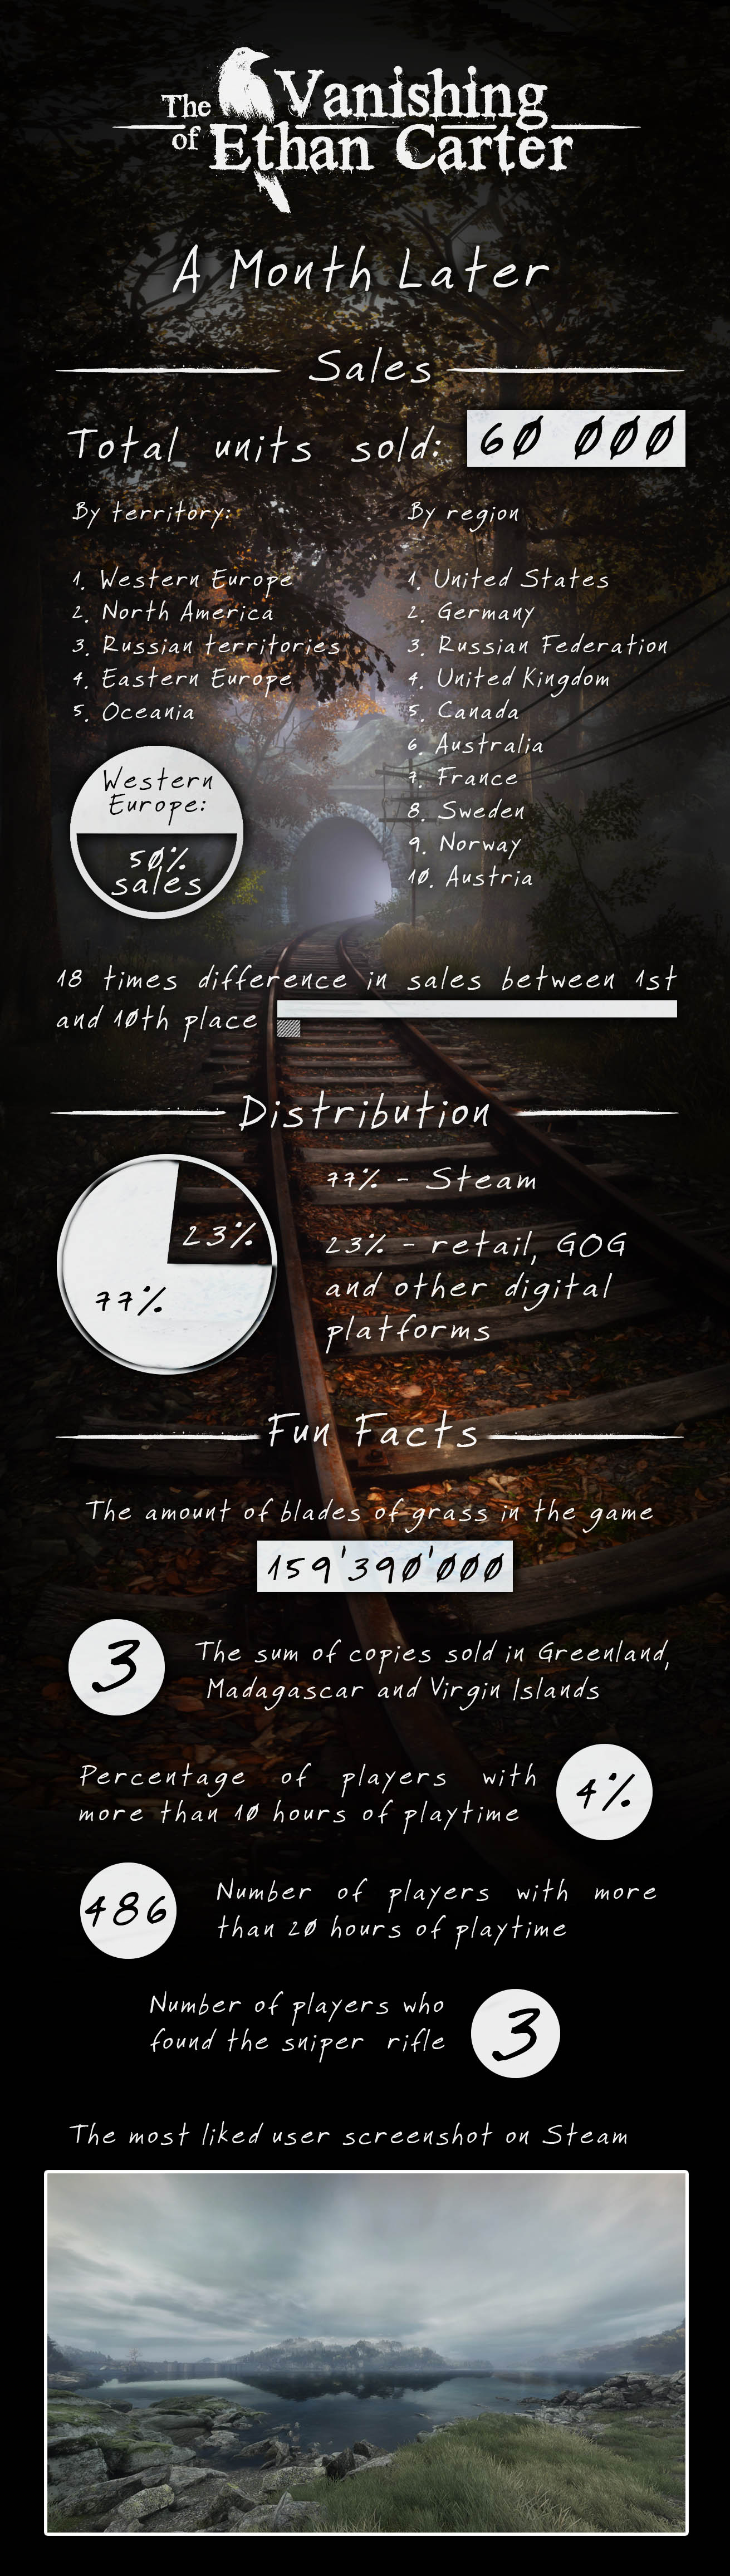 The Vanishing of Ethan Carter infographic